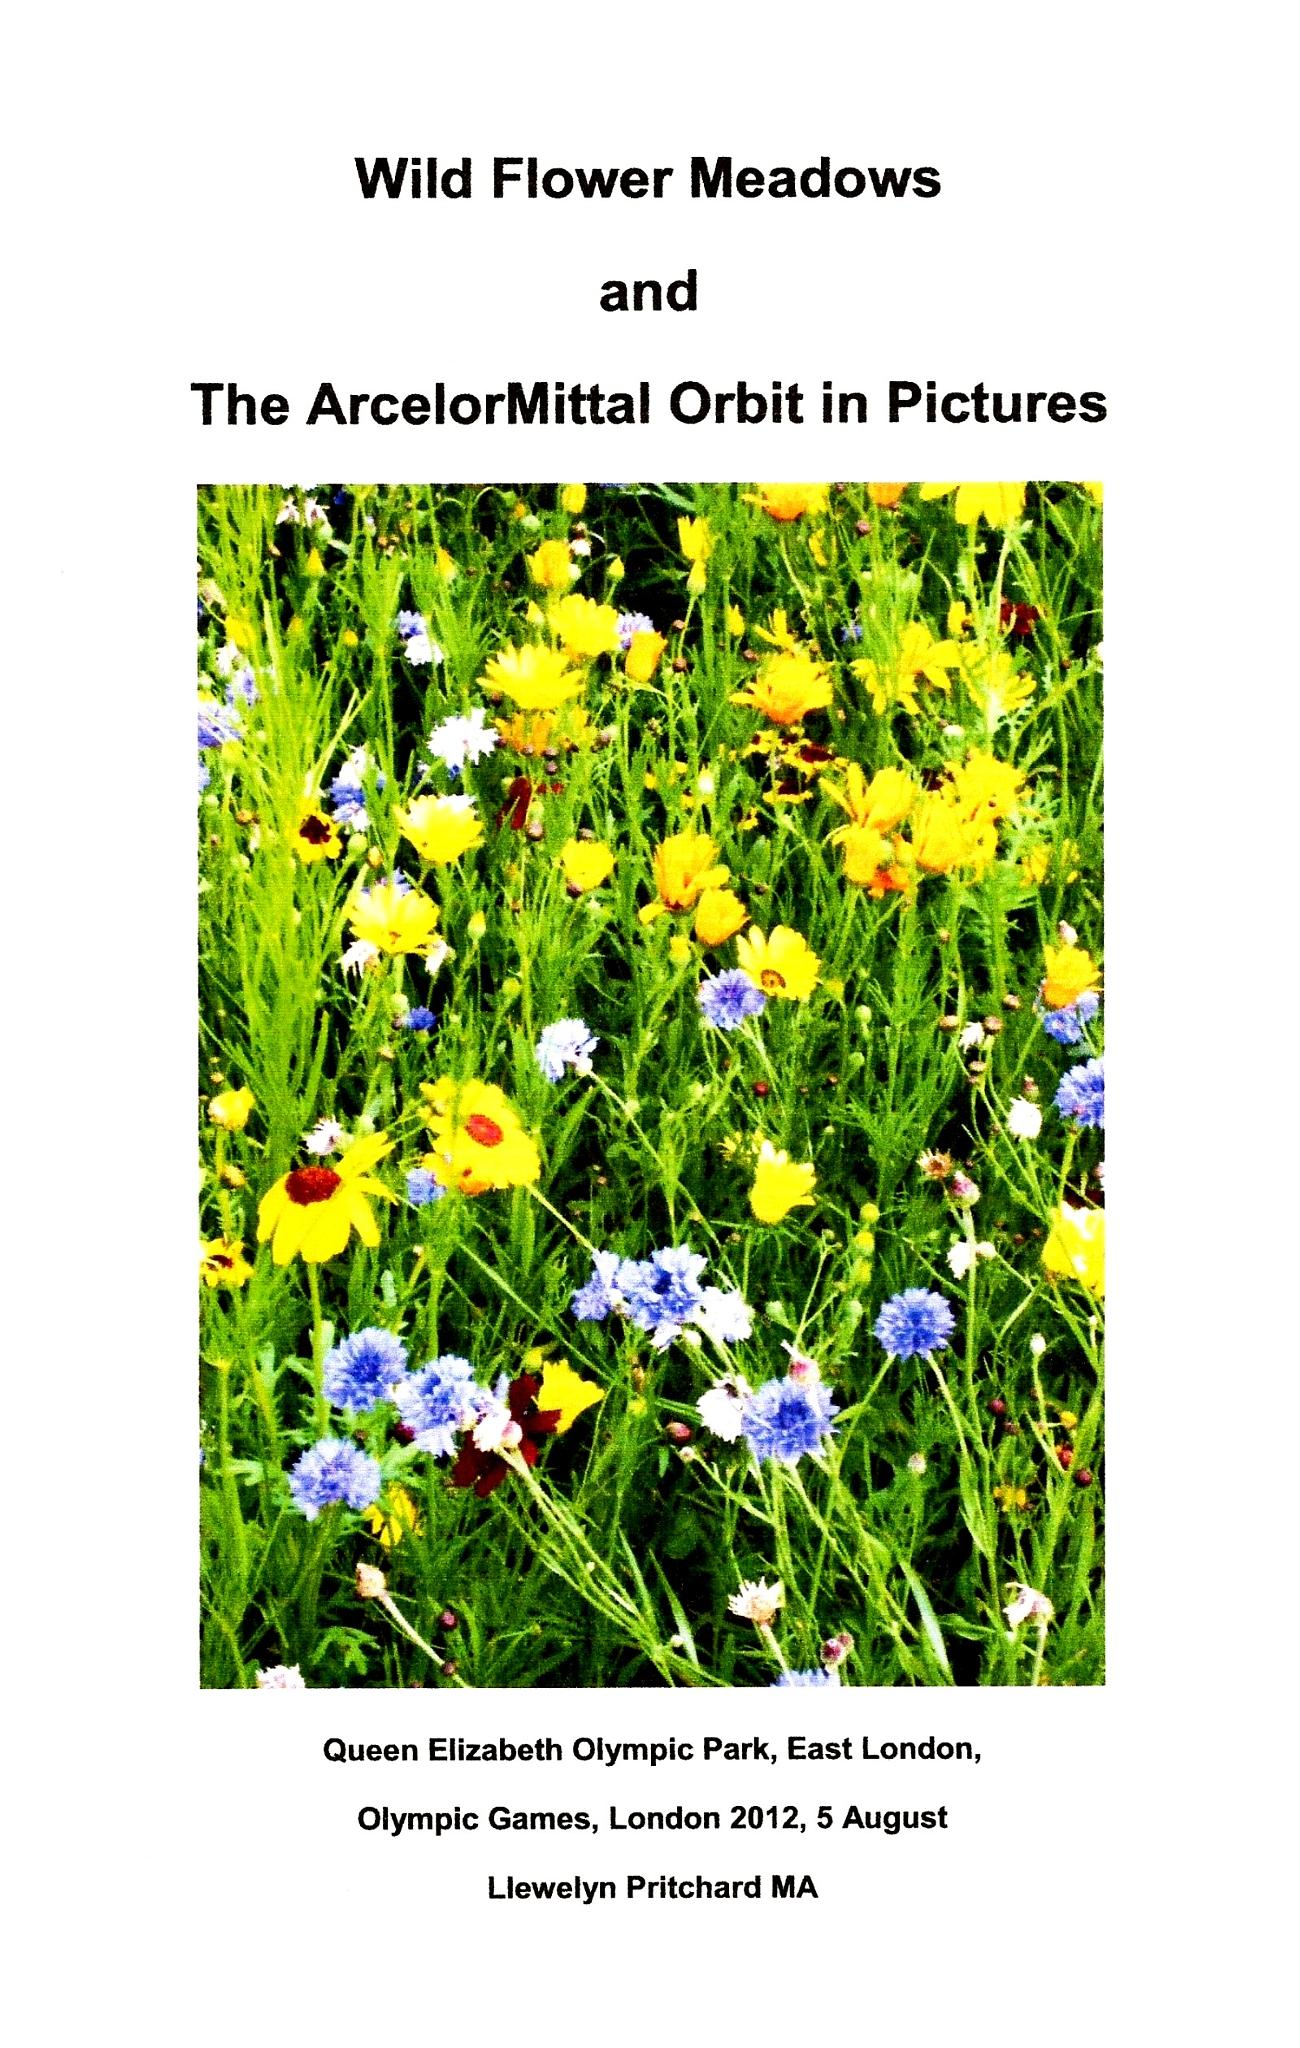 Wild Flower Meadows and The ArcelorMittal Orbit in Pictures, Queen Elizabeth Olympic Park, East Lond by Llewelyn Pritchard